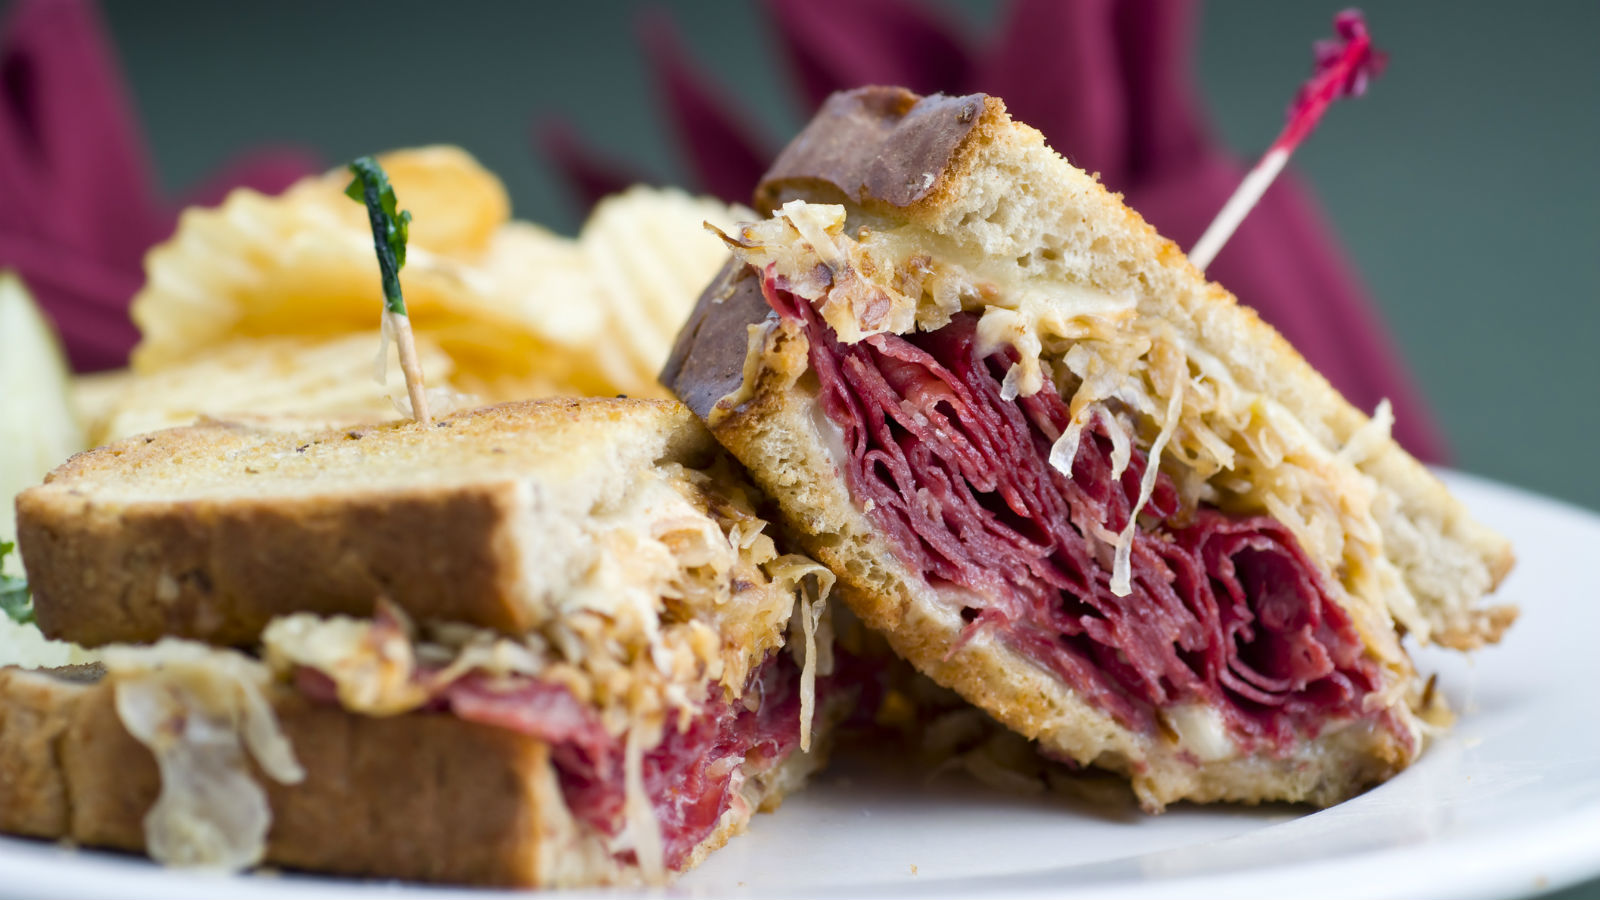 This Greek Jewish Deli Is Serving Up Pastrami With A Side